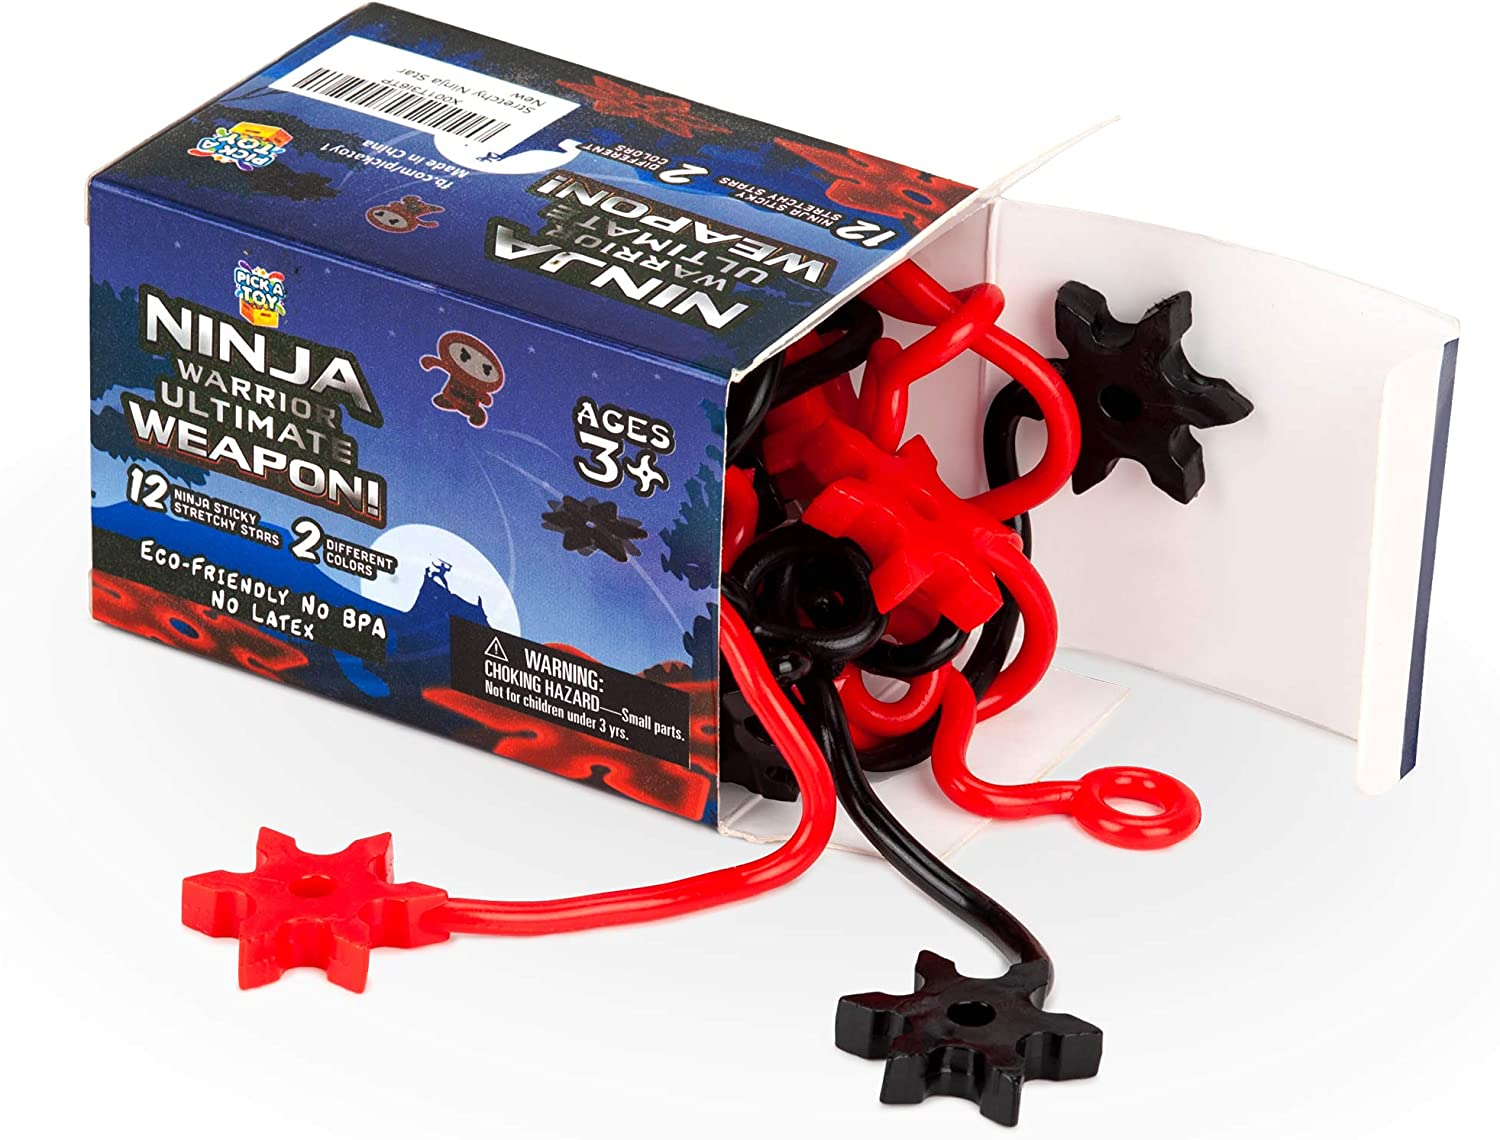 Pick A Toy Ninja Star Sticky Toys [12-Pieces] Elastic Ninja Toys for Boys & Girls | Great Birthday & Party Favors Idea | Black & Red Colors | Eco-Friendly, BPA-Free Materials